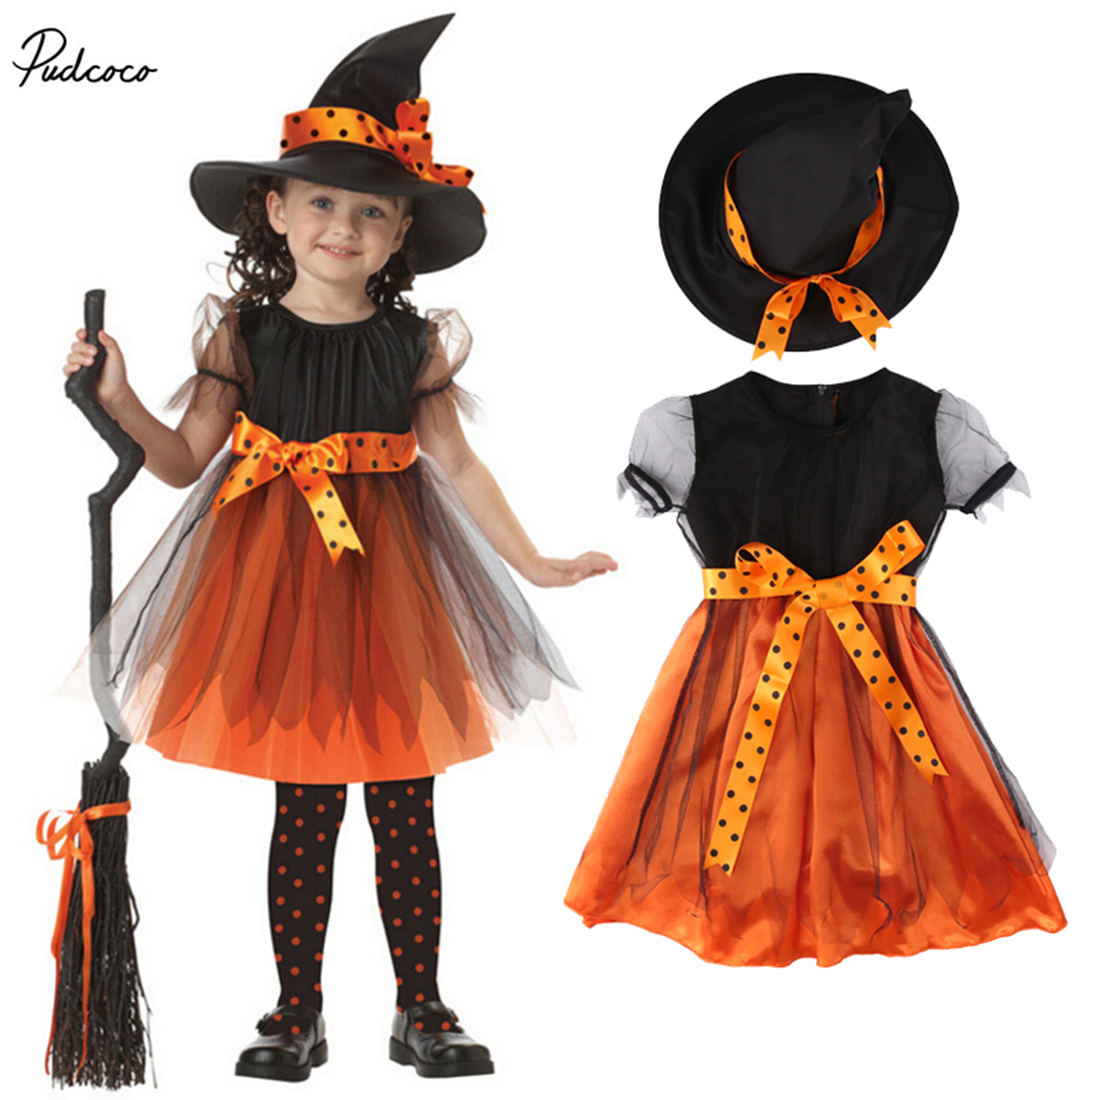 все цены на Witch Cosplay Clothing Toddler Girls Halloween Fancy Short Sleeve Dress Party Costume Outfit Patchwork Bow Tie Clothes HAT Set